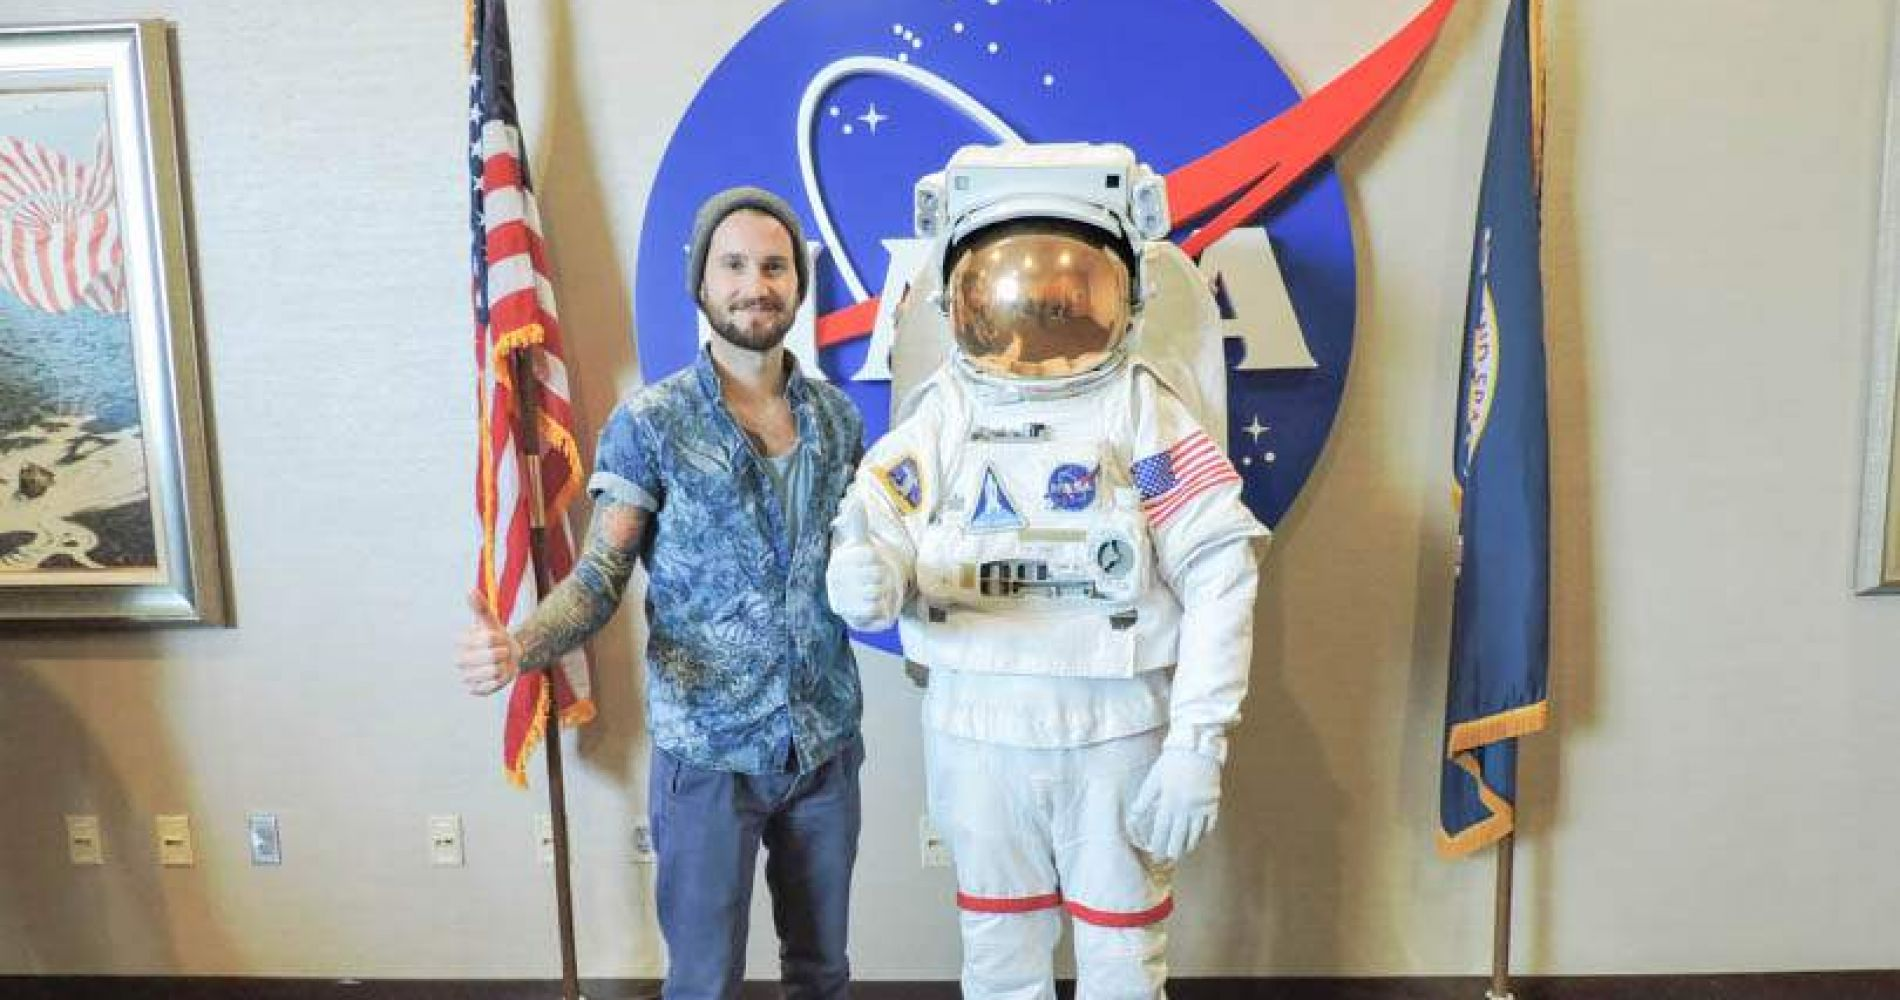 Dine With an Astronaut Florida Tinggly Experience Gifts